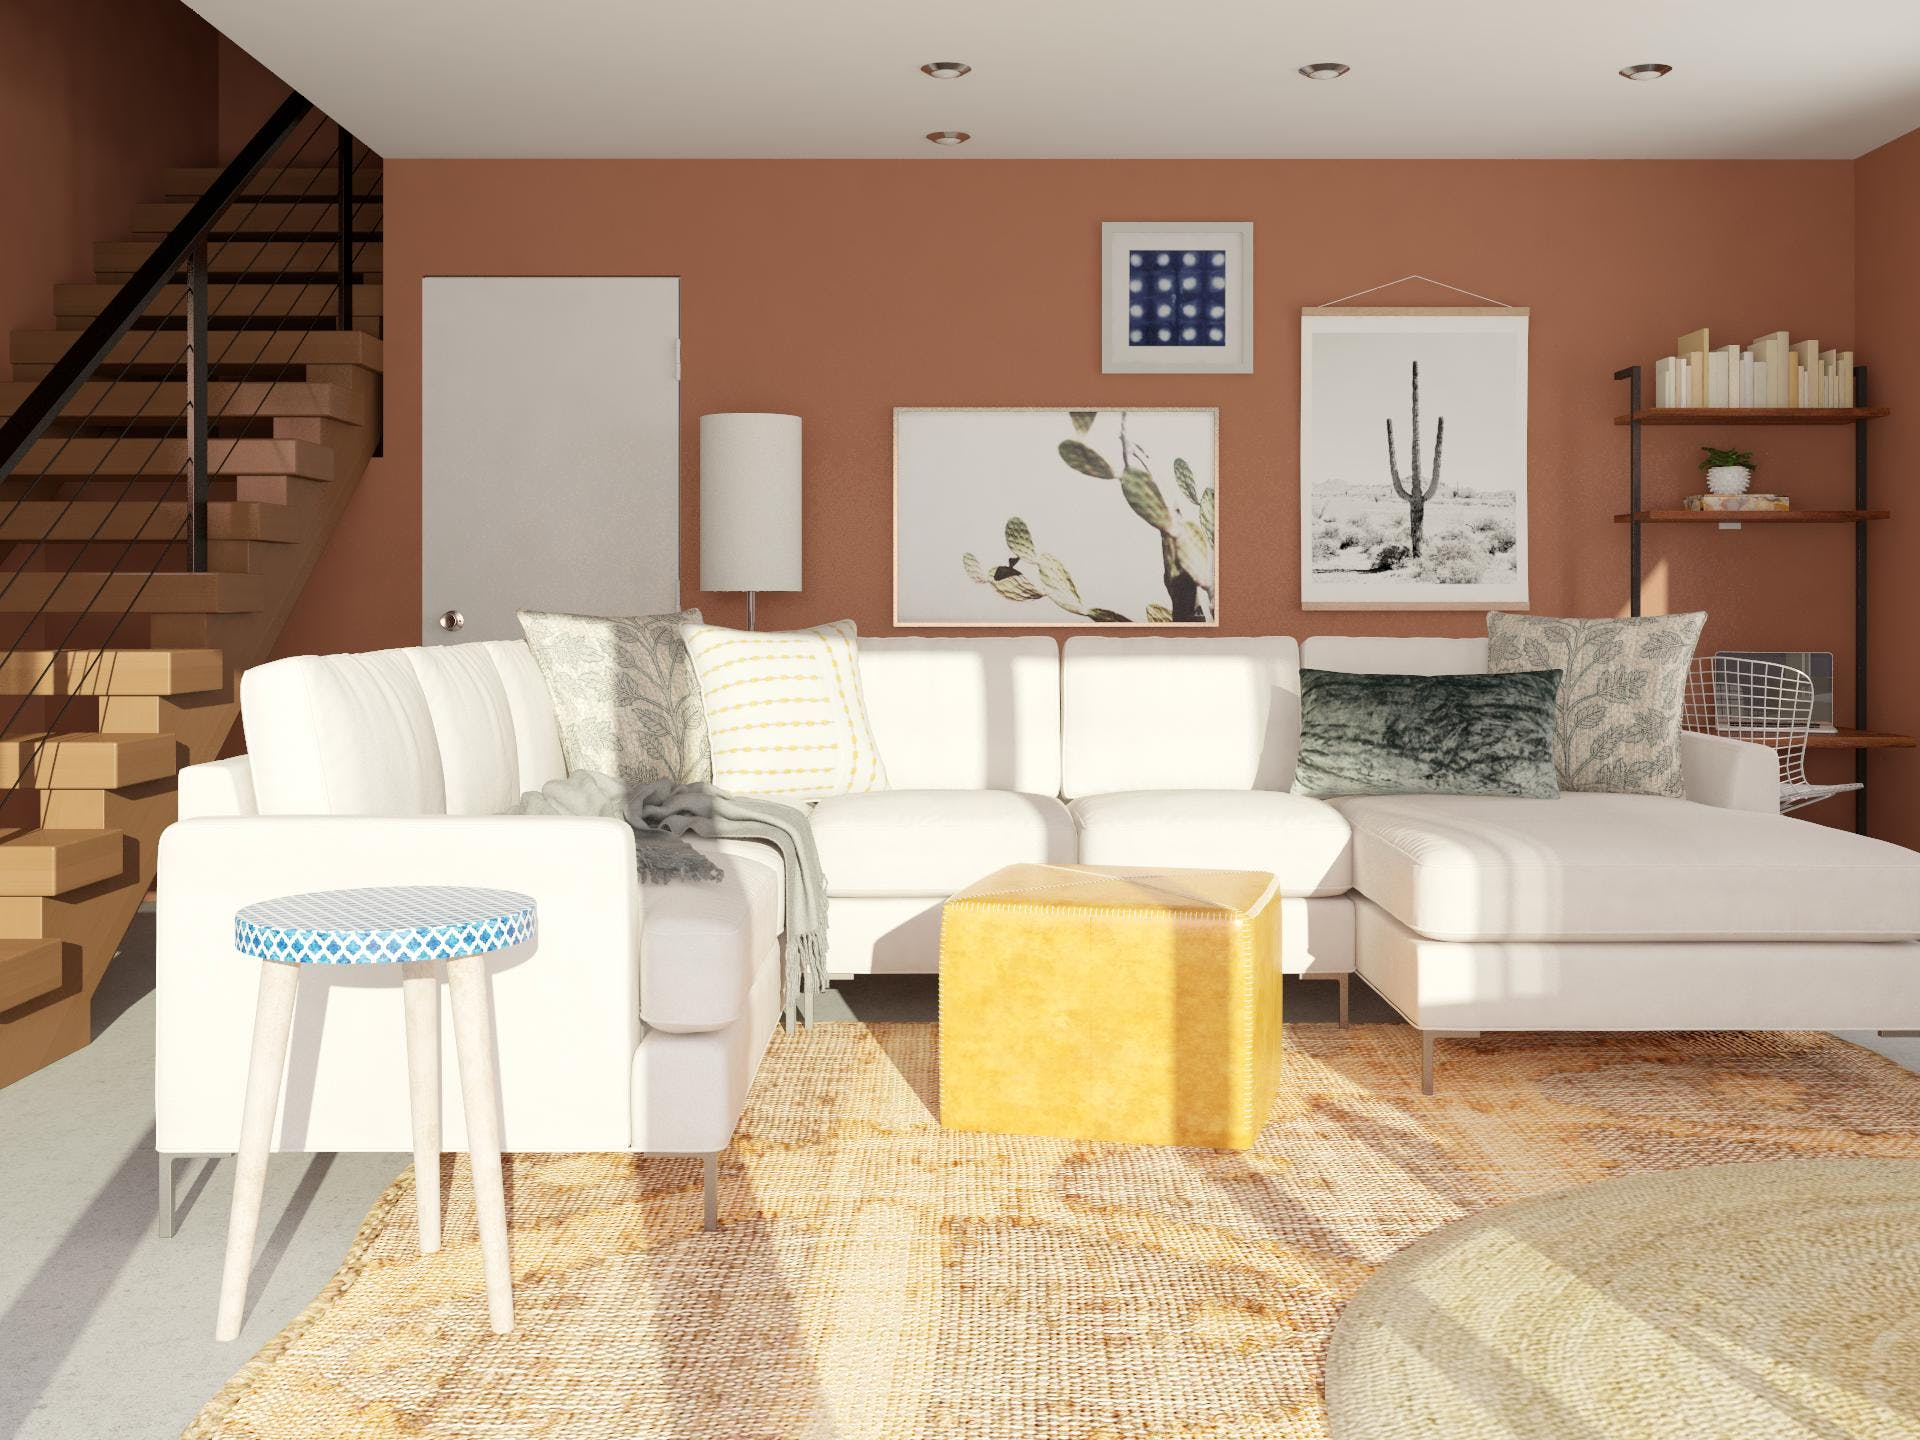 Contemporary Living Room in Desert Hues